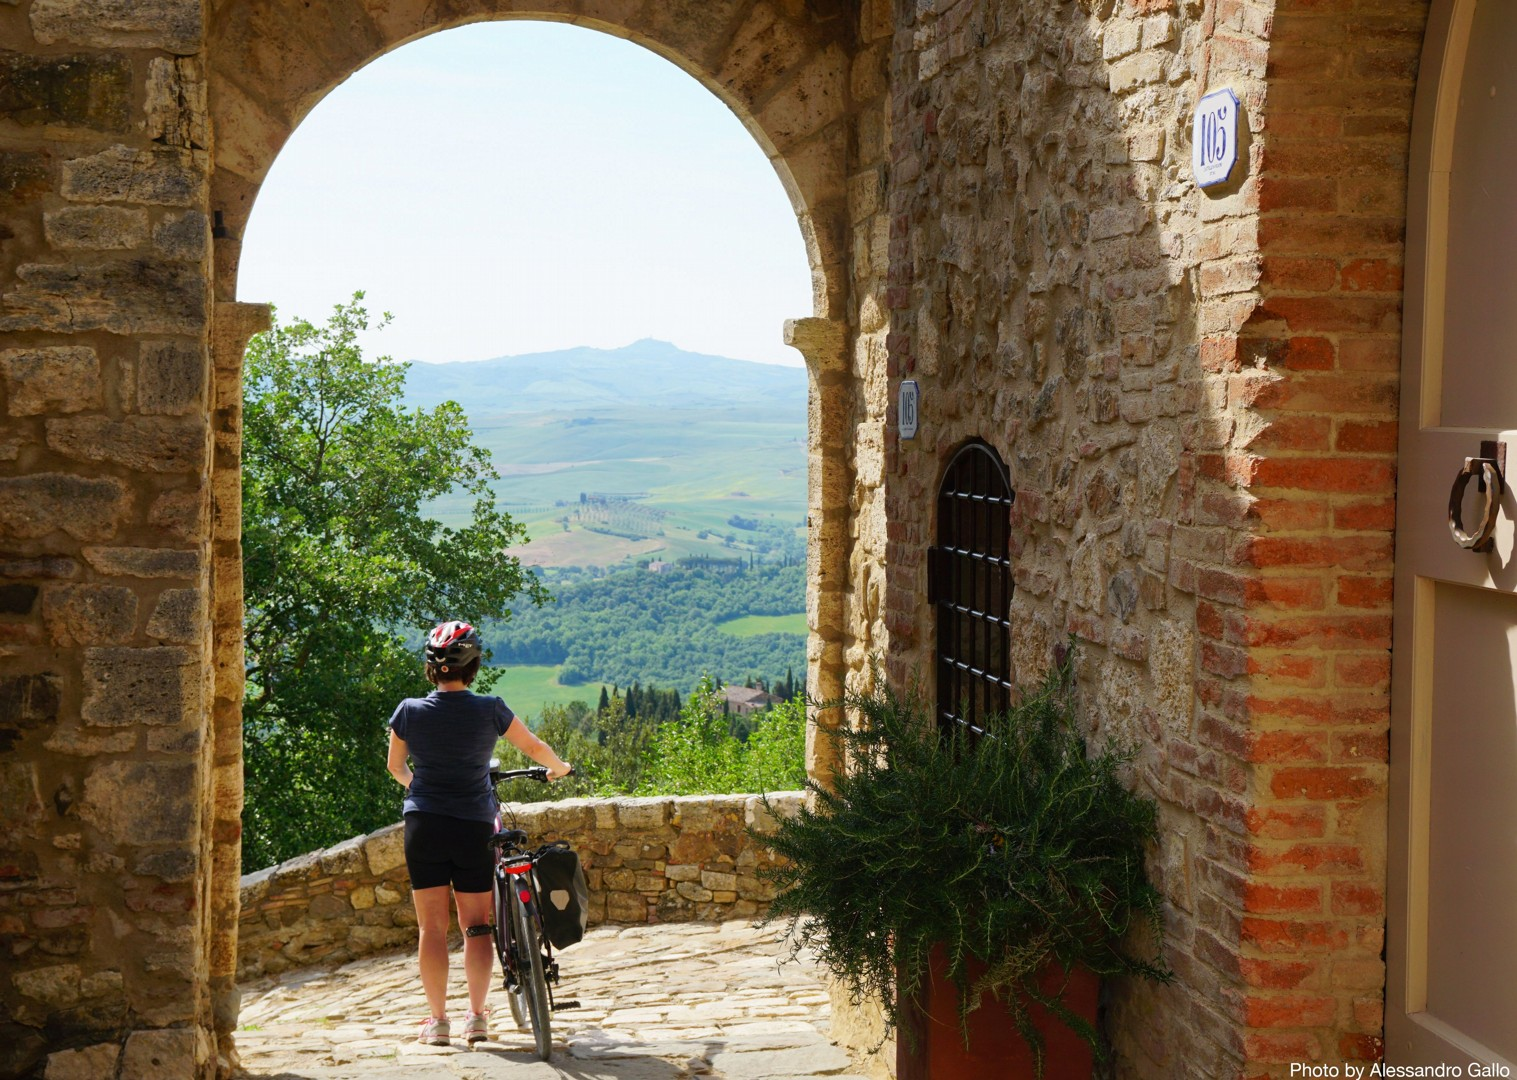 Italy-Via-Francigena-Tuscany-to-Rome-Guided-Leisure-Cycling-Holiday-beautiful-riding-through-old-towns - Italy - Via Francigena (Tuscany to Rome) - Guided Leisure Cycling Holiday - Leisure Cycling